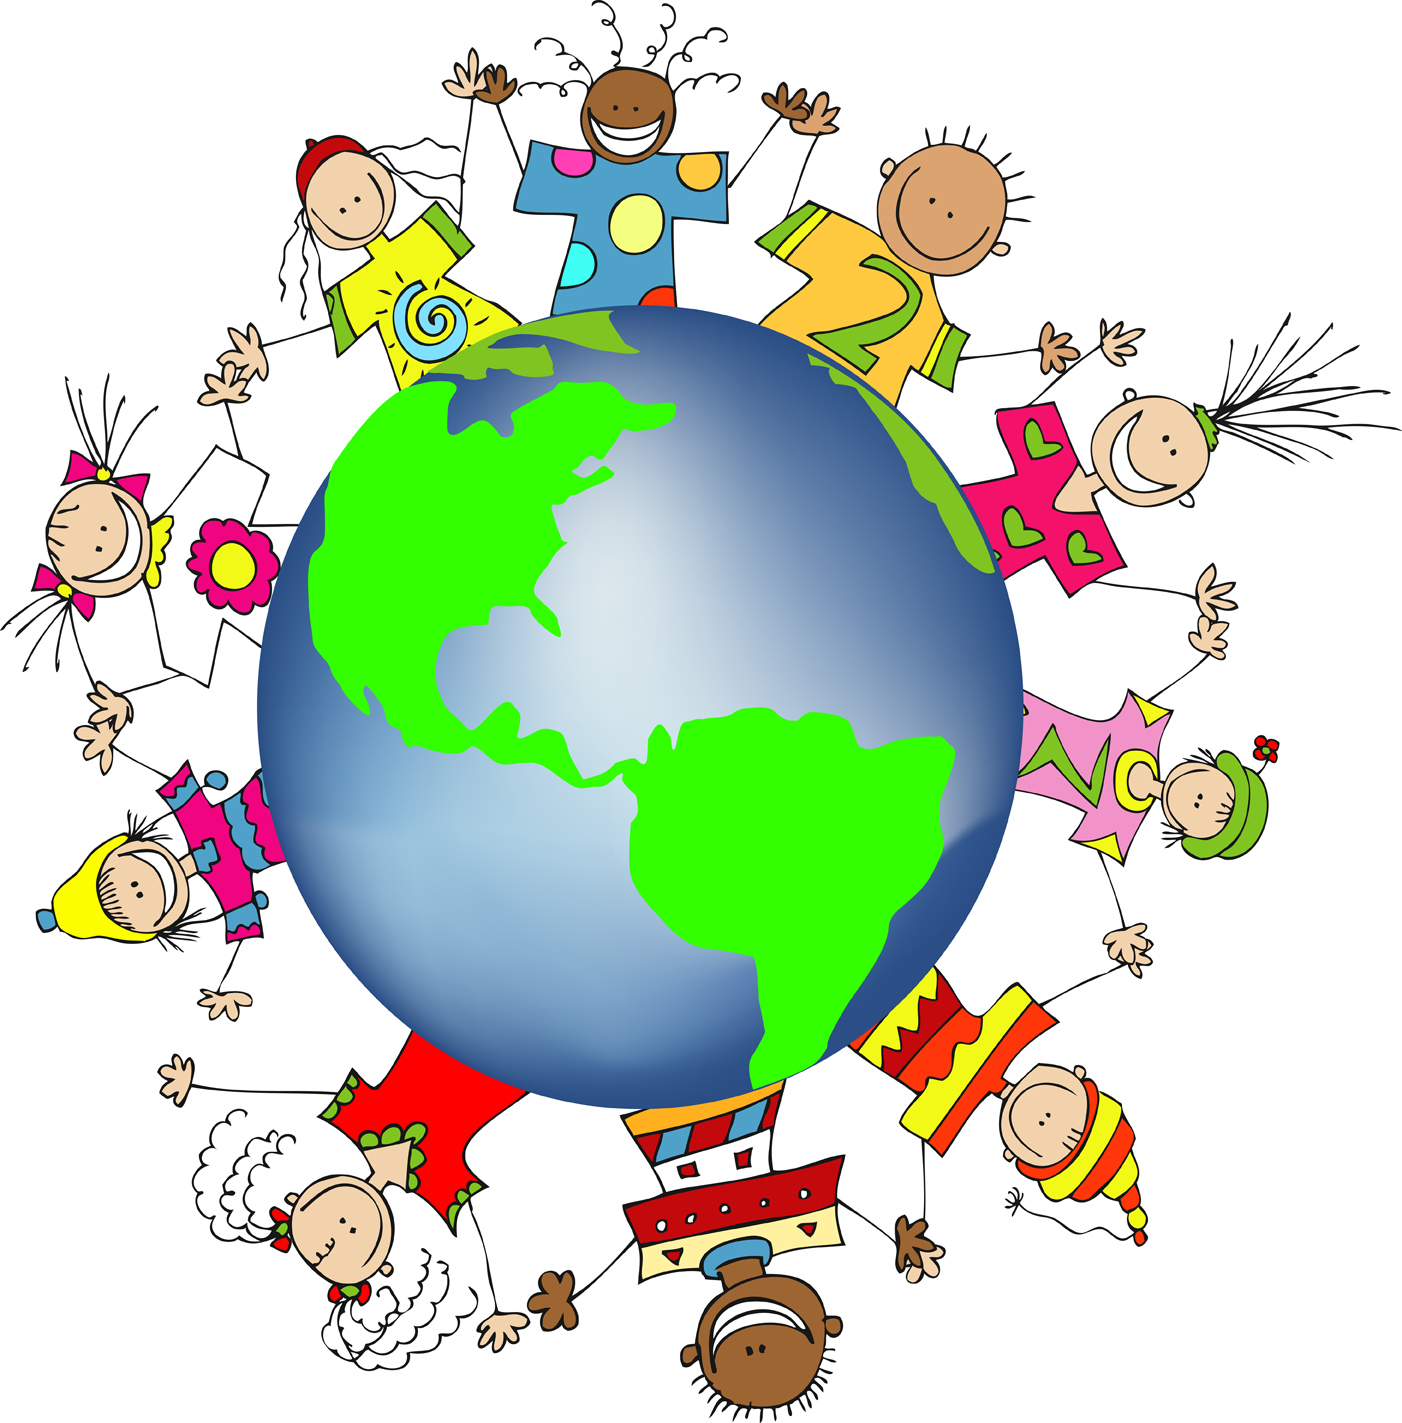 Kids World Hands Friends Networks Globe Illustration Small   Free